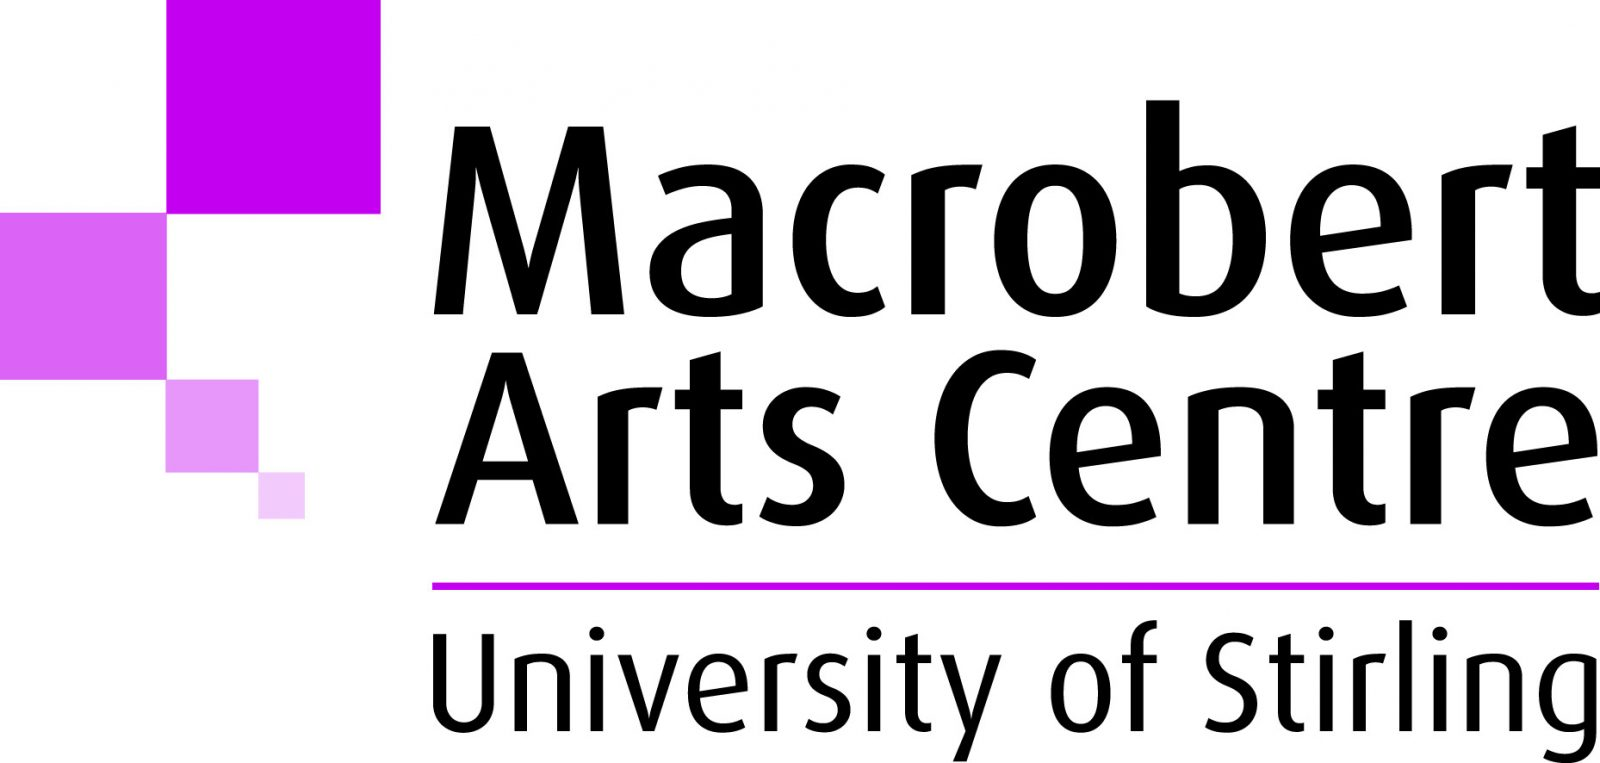 Macrobert Arts Centre logo